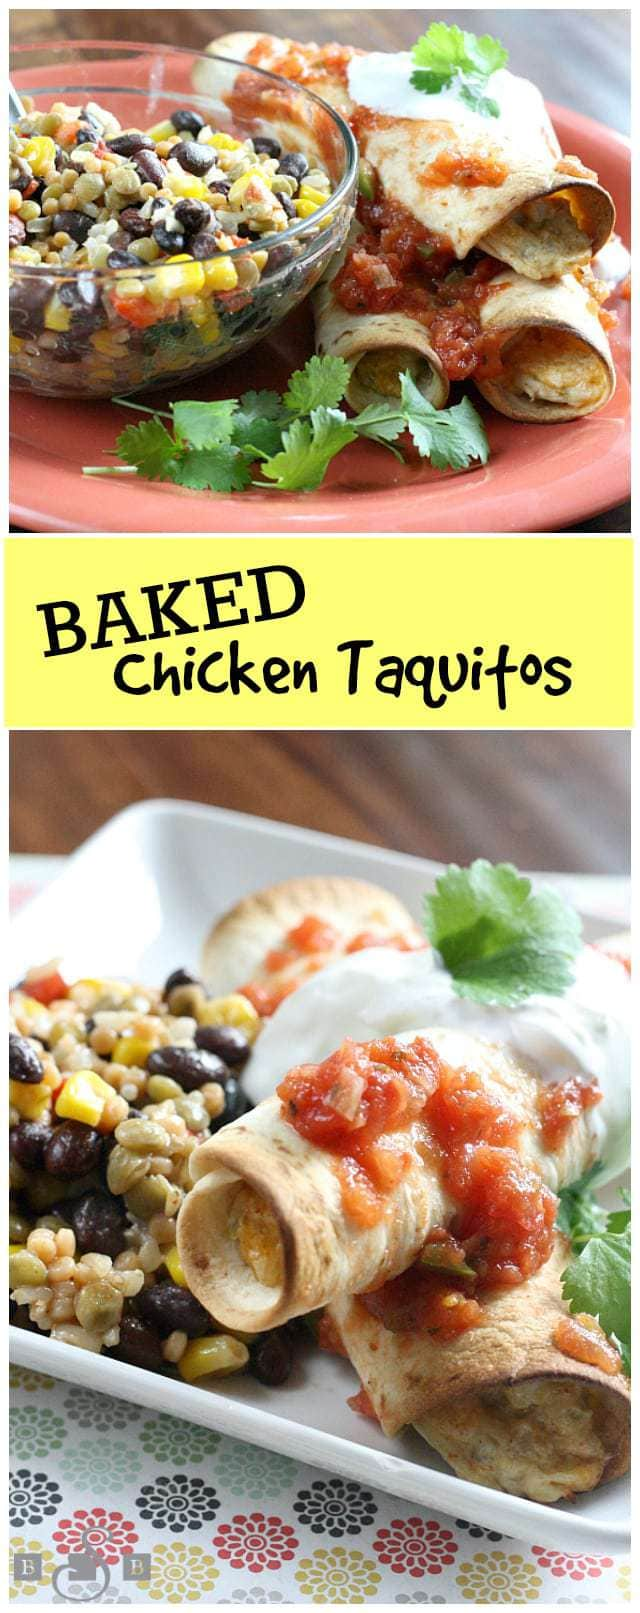 Baked Chicken Taquitos - Butter With a Side of Bread